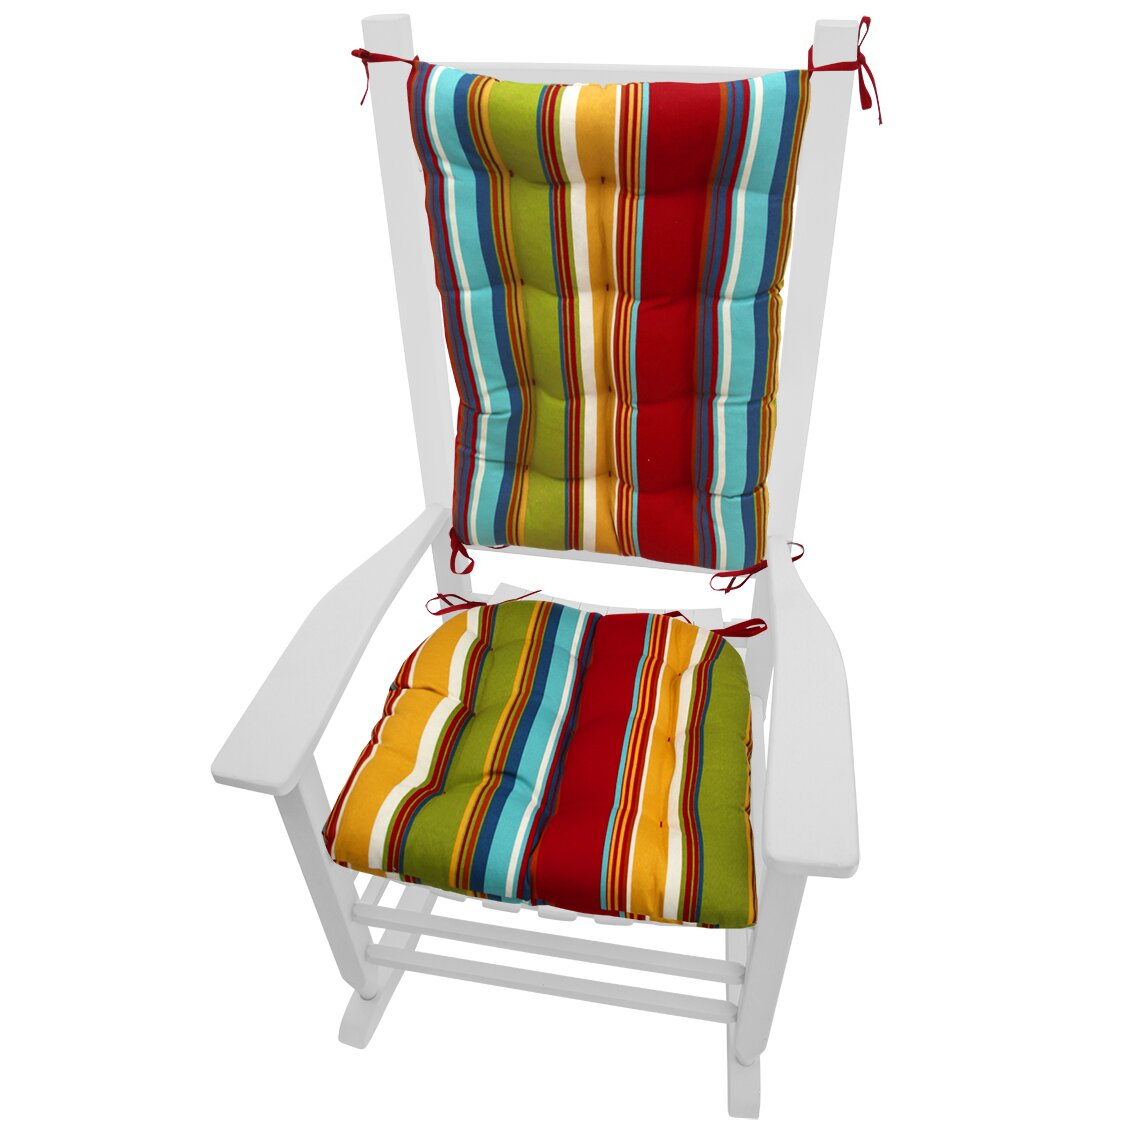 Barnett Home Decor Coastal Outdoor Rocking Chair Cushion  Wayfair